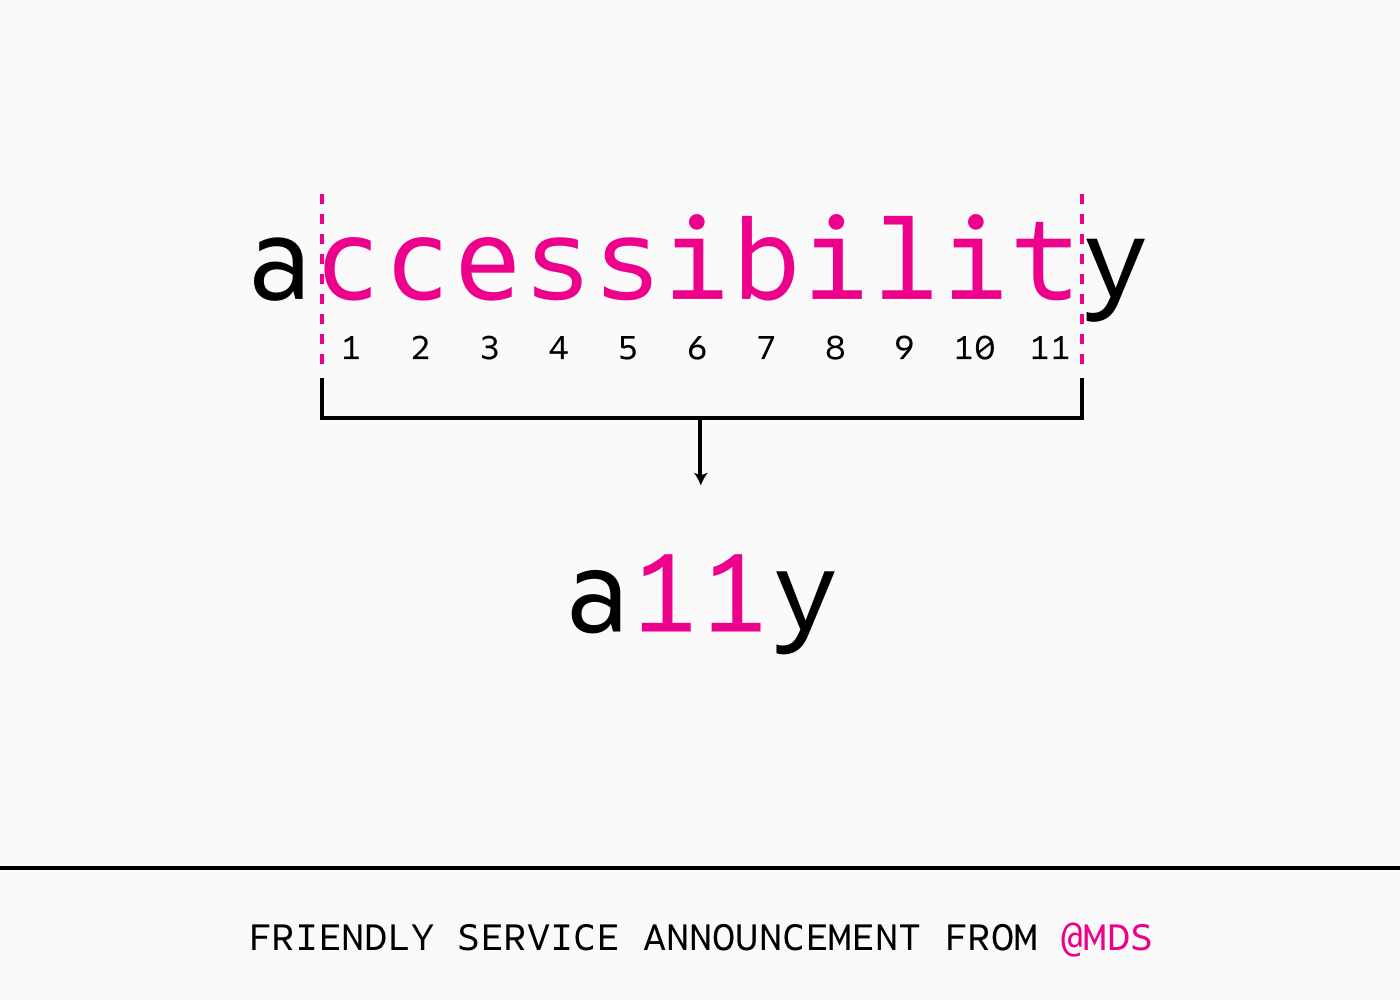 a11y equals accessibility